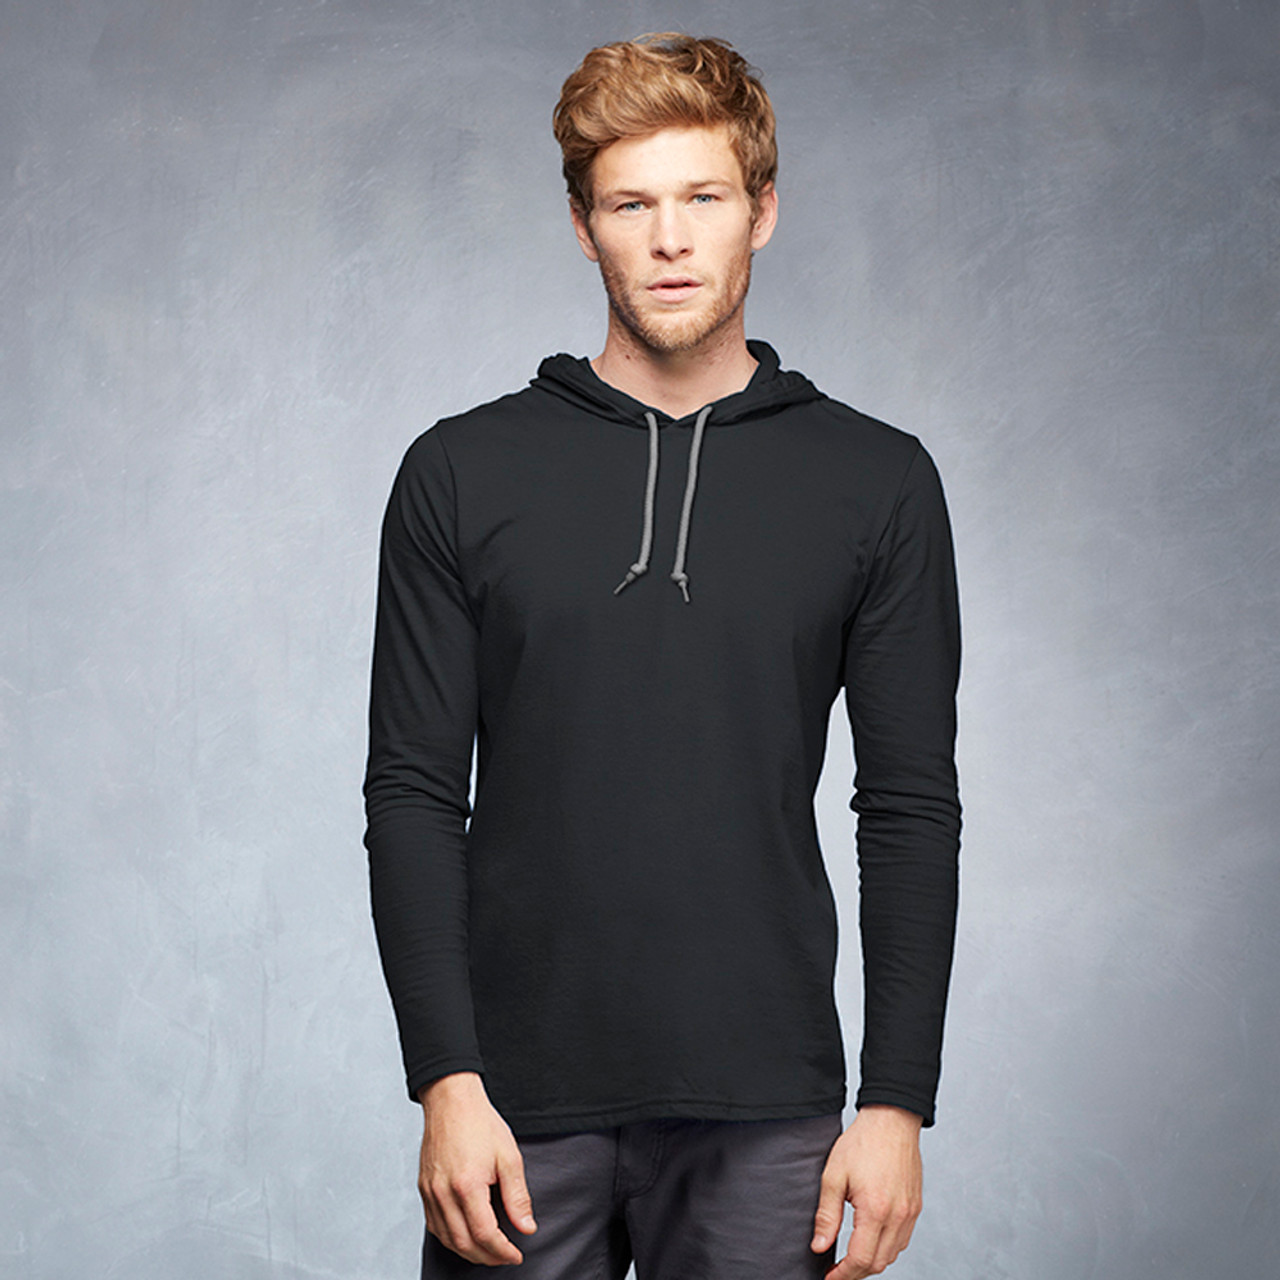 Crossover V Neckline Mens Long Sleeve Jersey Hooded T-Shirt Tee Top Fitted